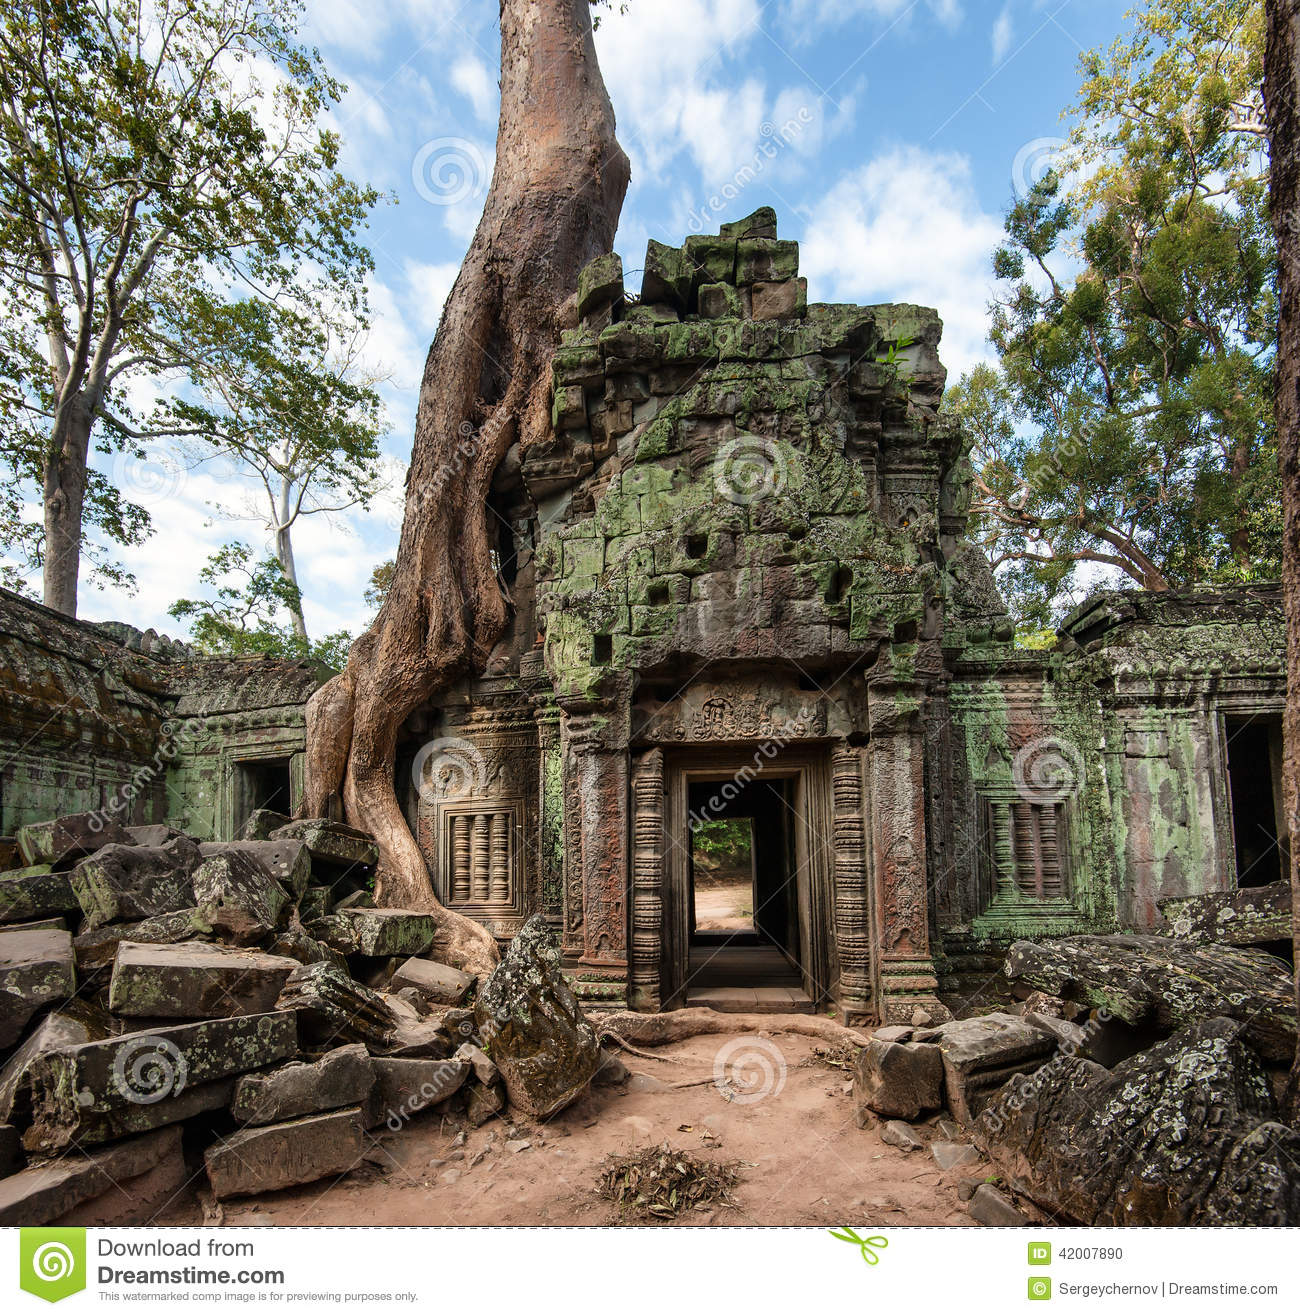 Places Of Worship For Taoism: Places Of Worship In Cambodia